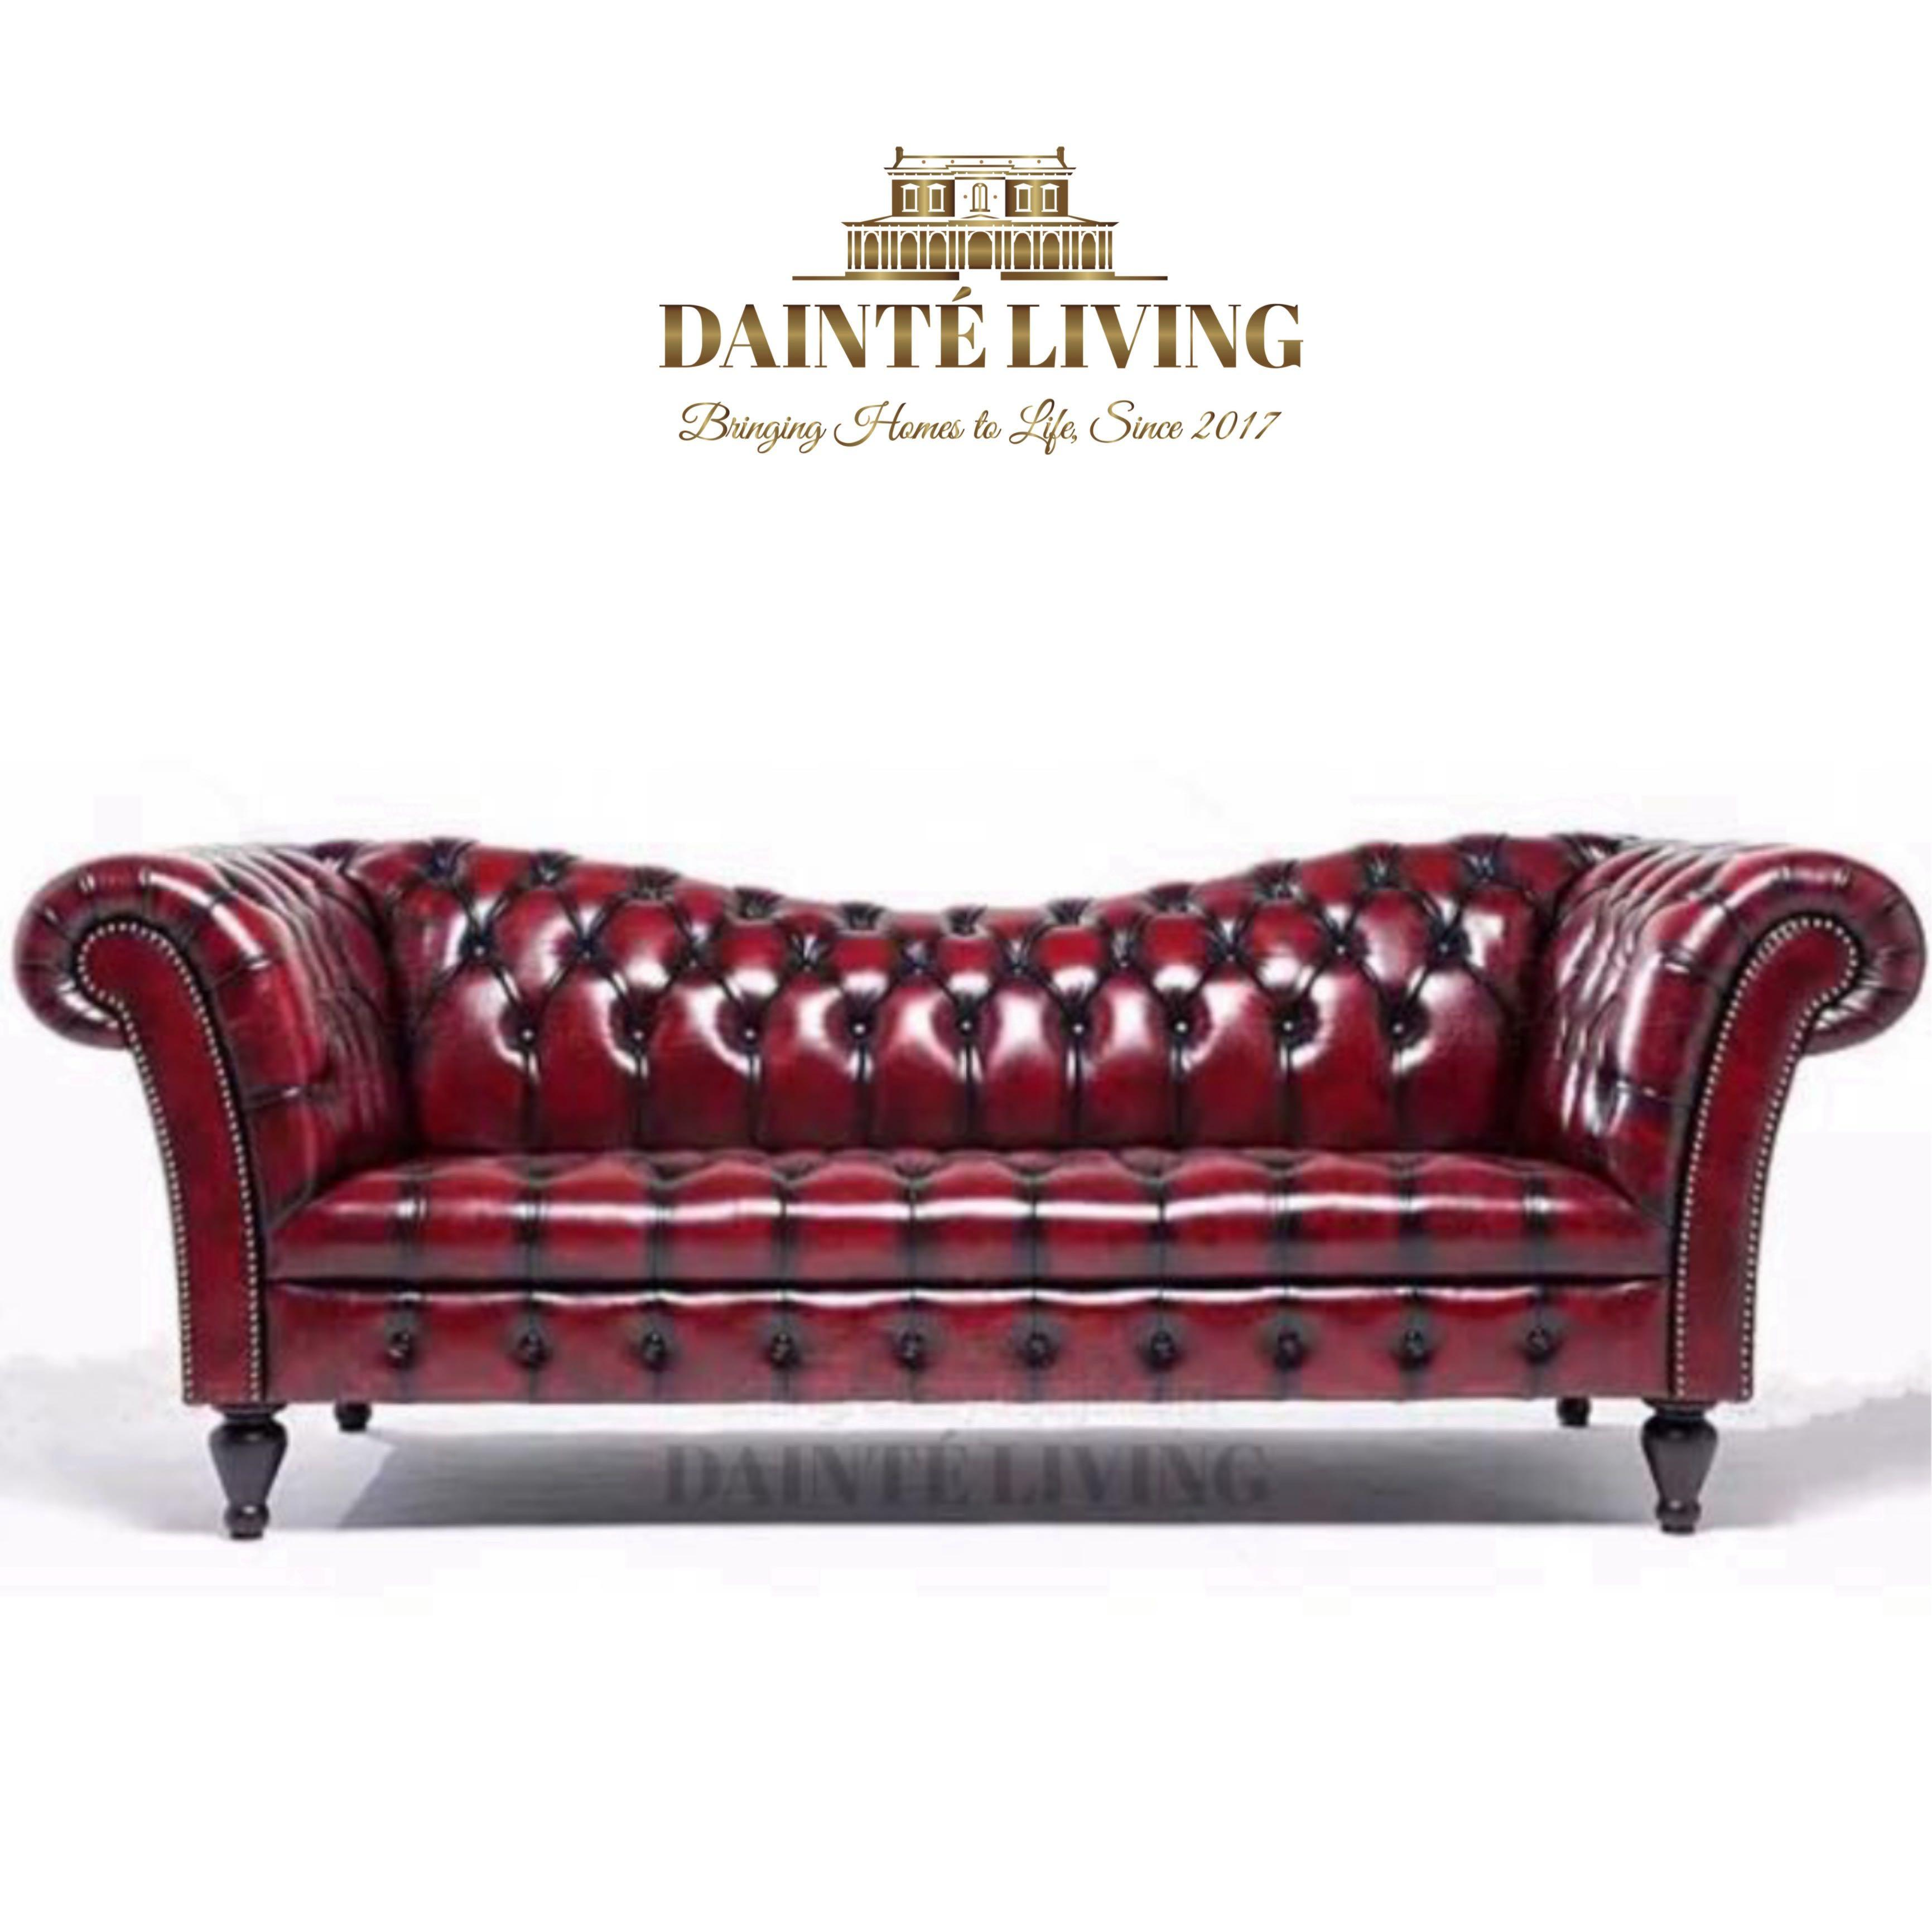 Classic Gentlemen American French Chesterfield Tufted Sofa